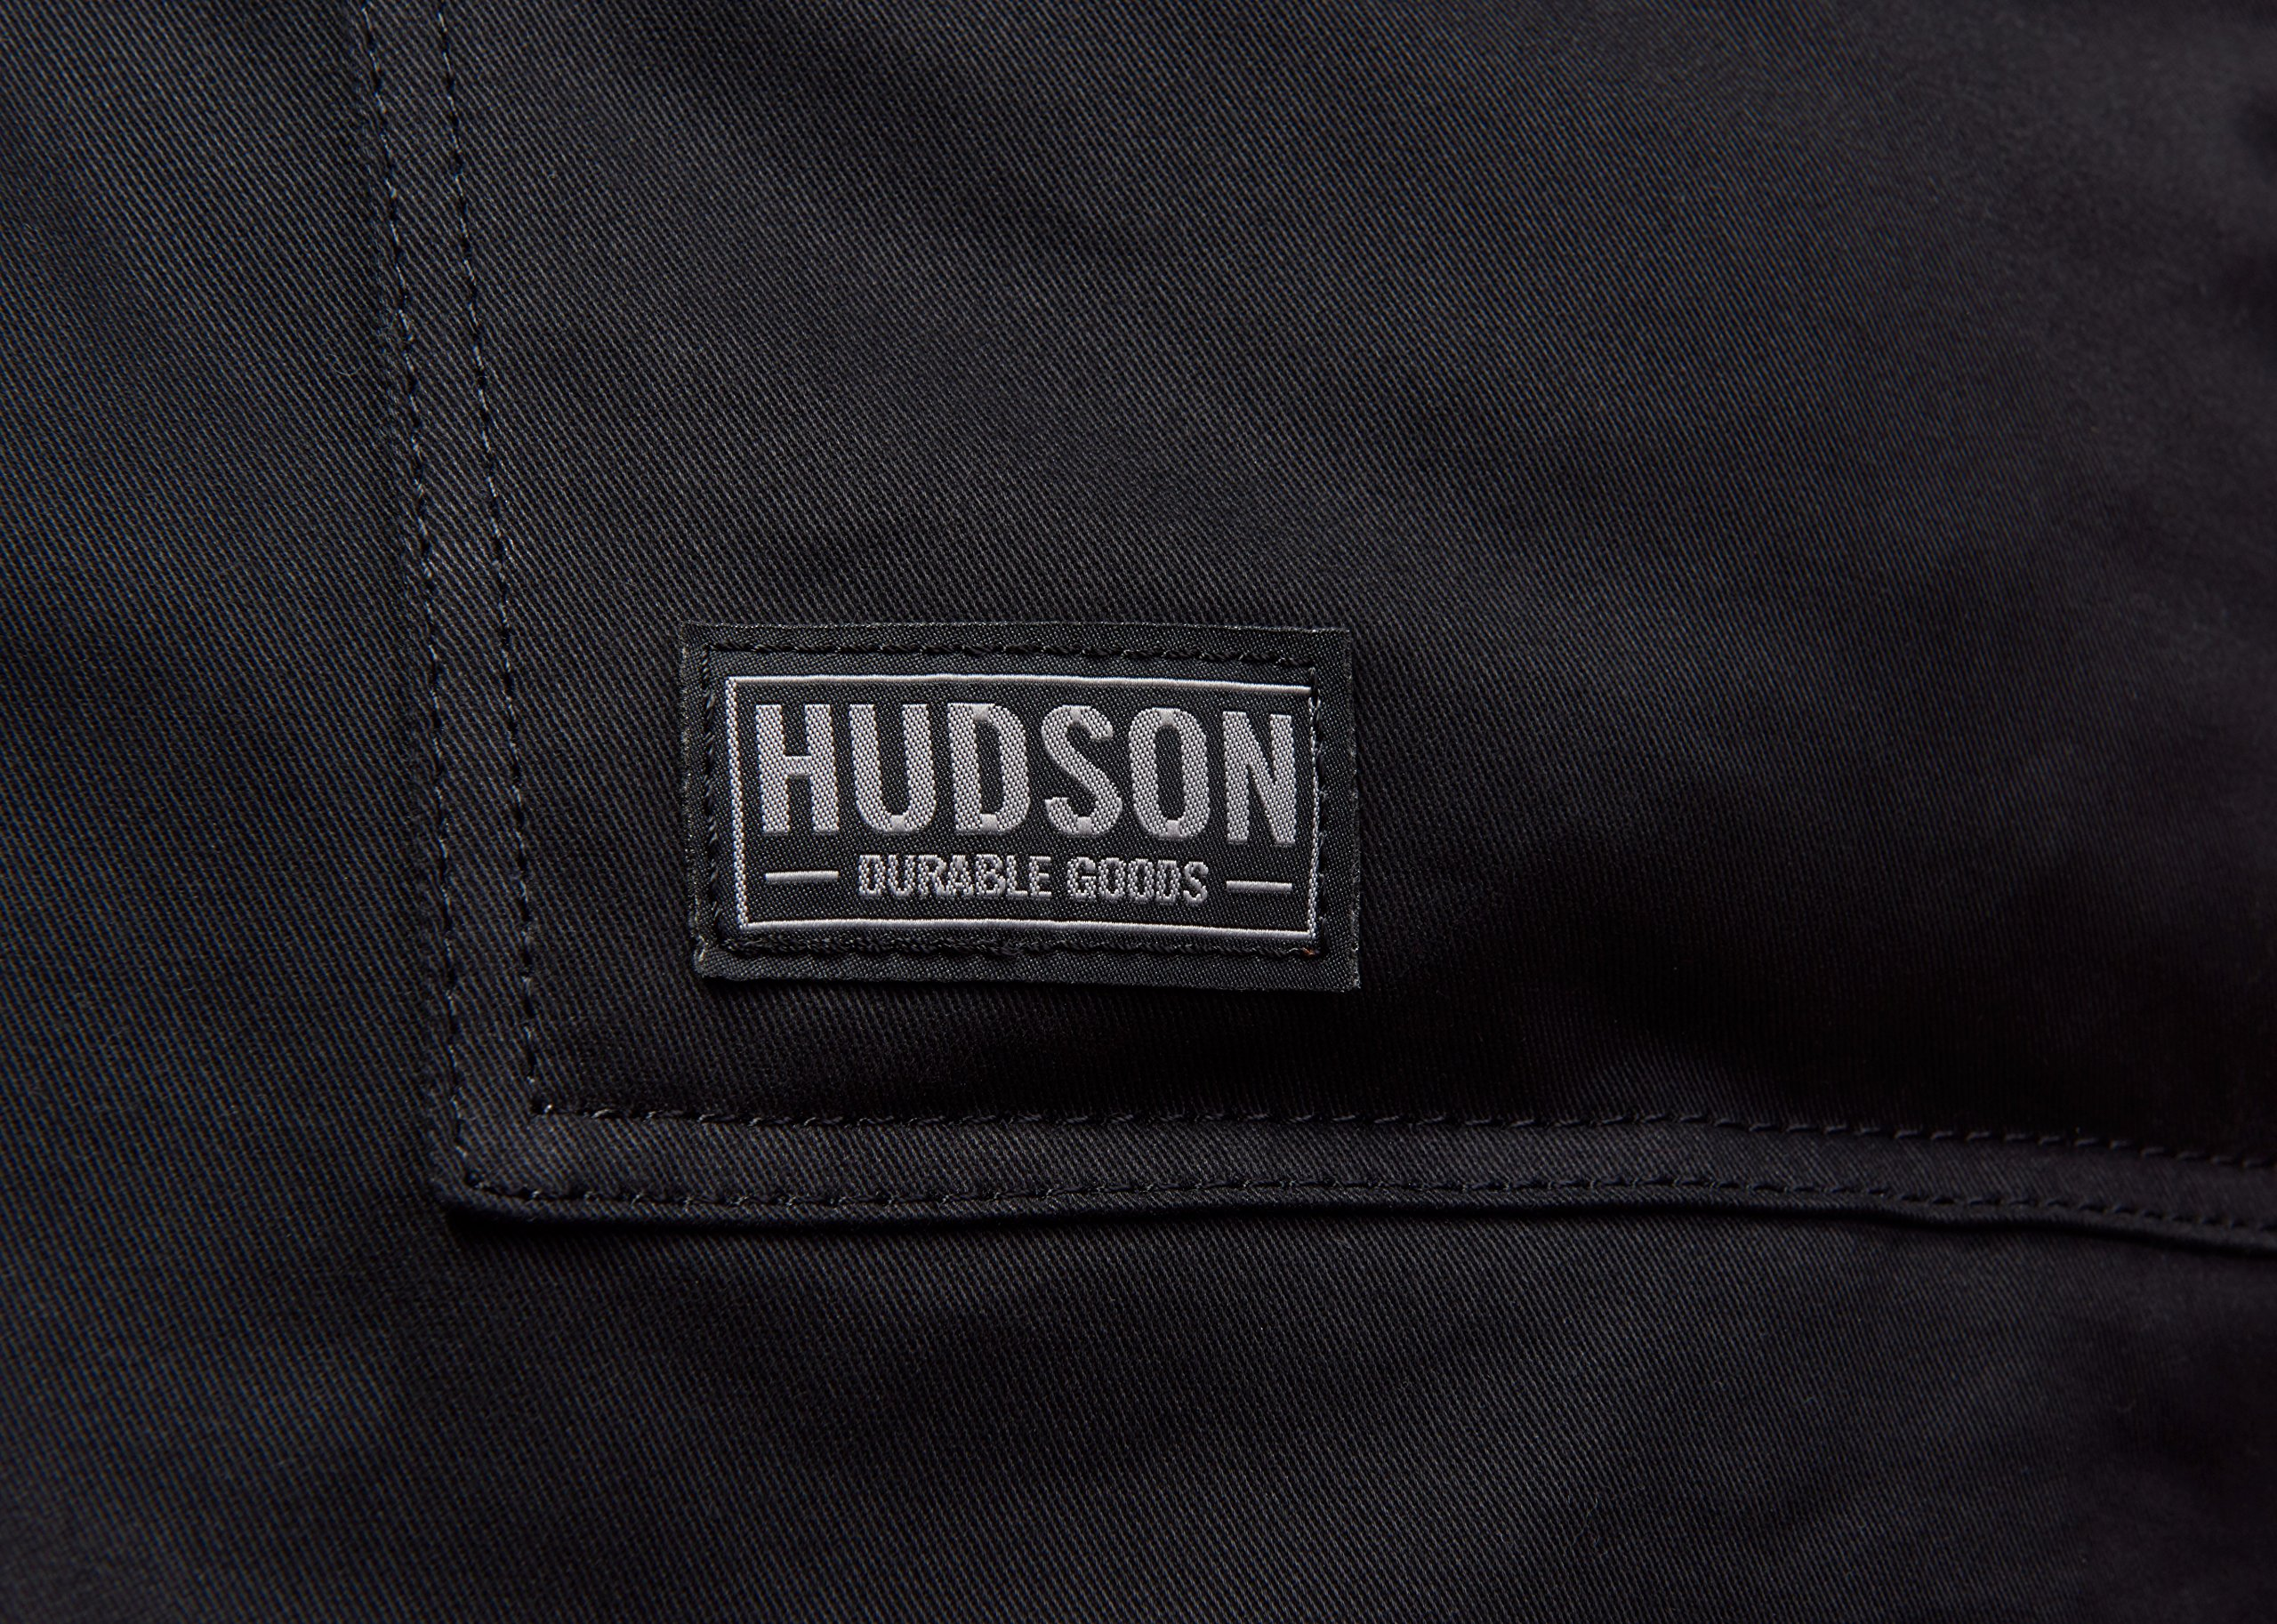 Hudson Durable Goods - Professional Grade Chef Apron for Kitchen, BBQ, and Grill (Black) with Towel Loop + Tool Pockets + Quick Release Buckle, Adjustable M to XXL by Hudson Durable Goods (Image #9)